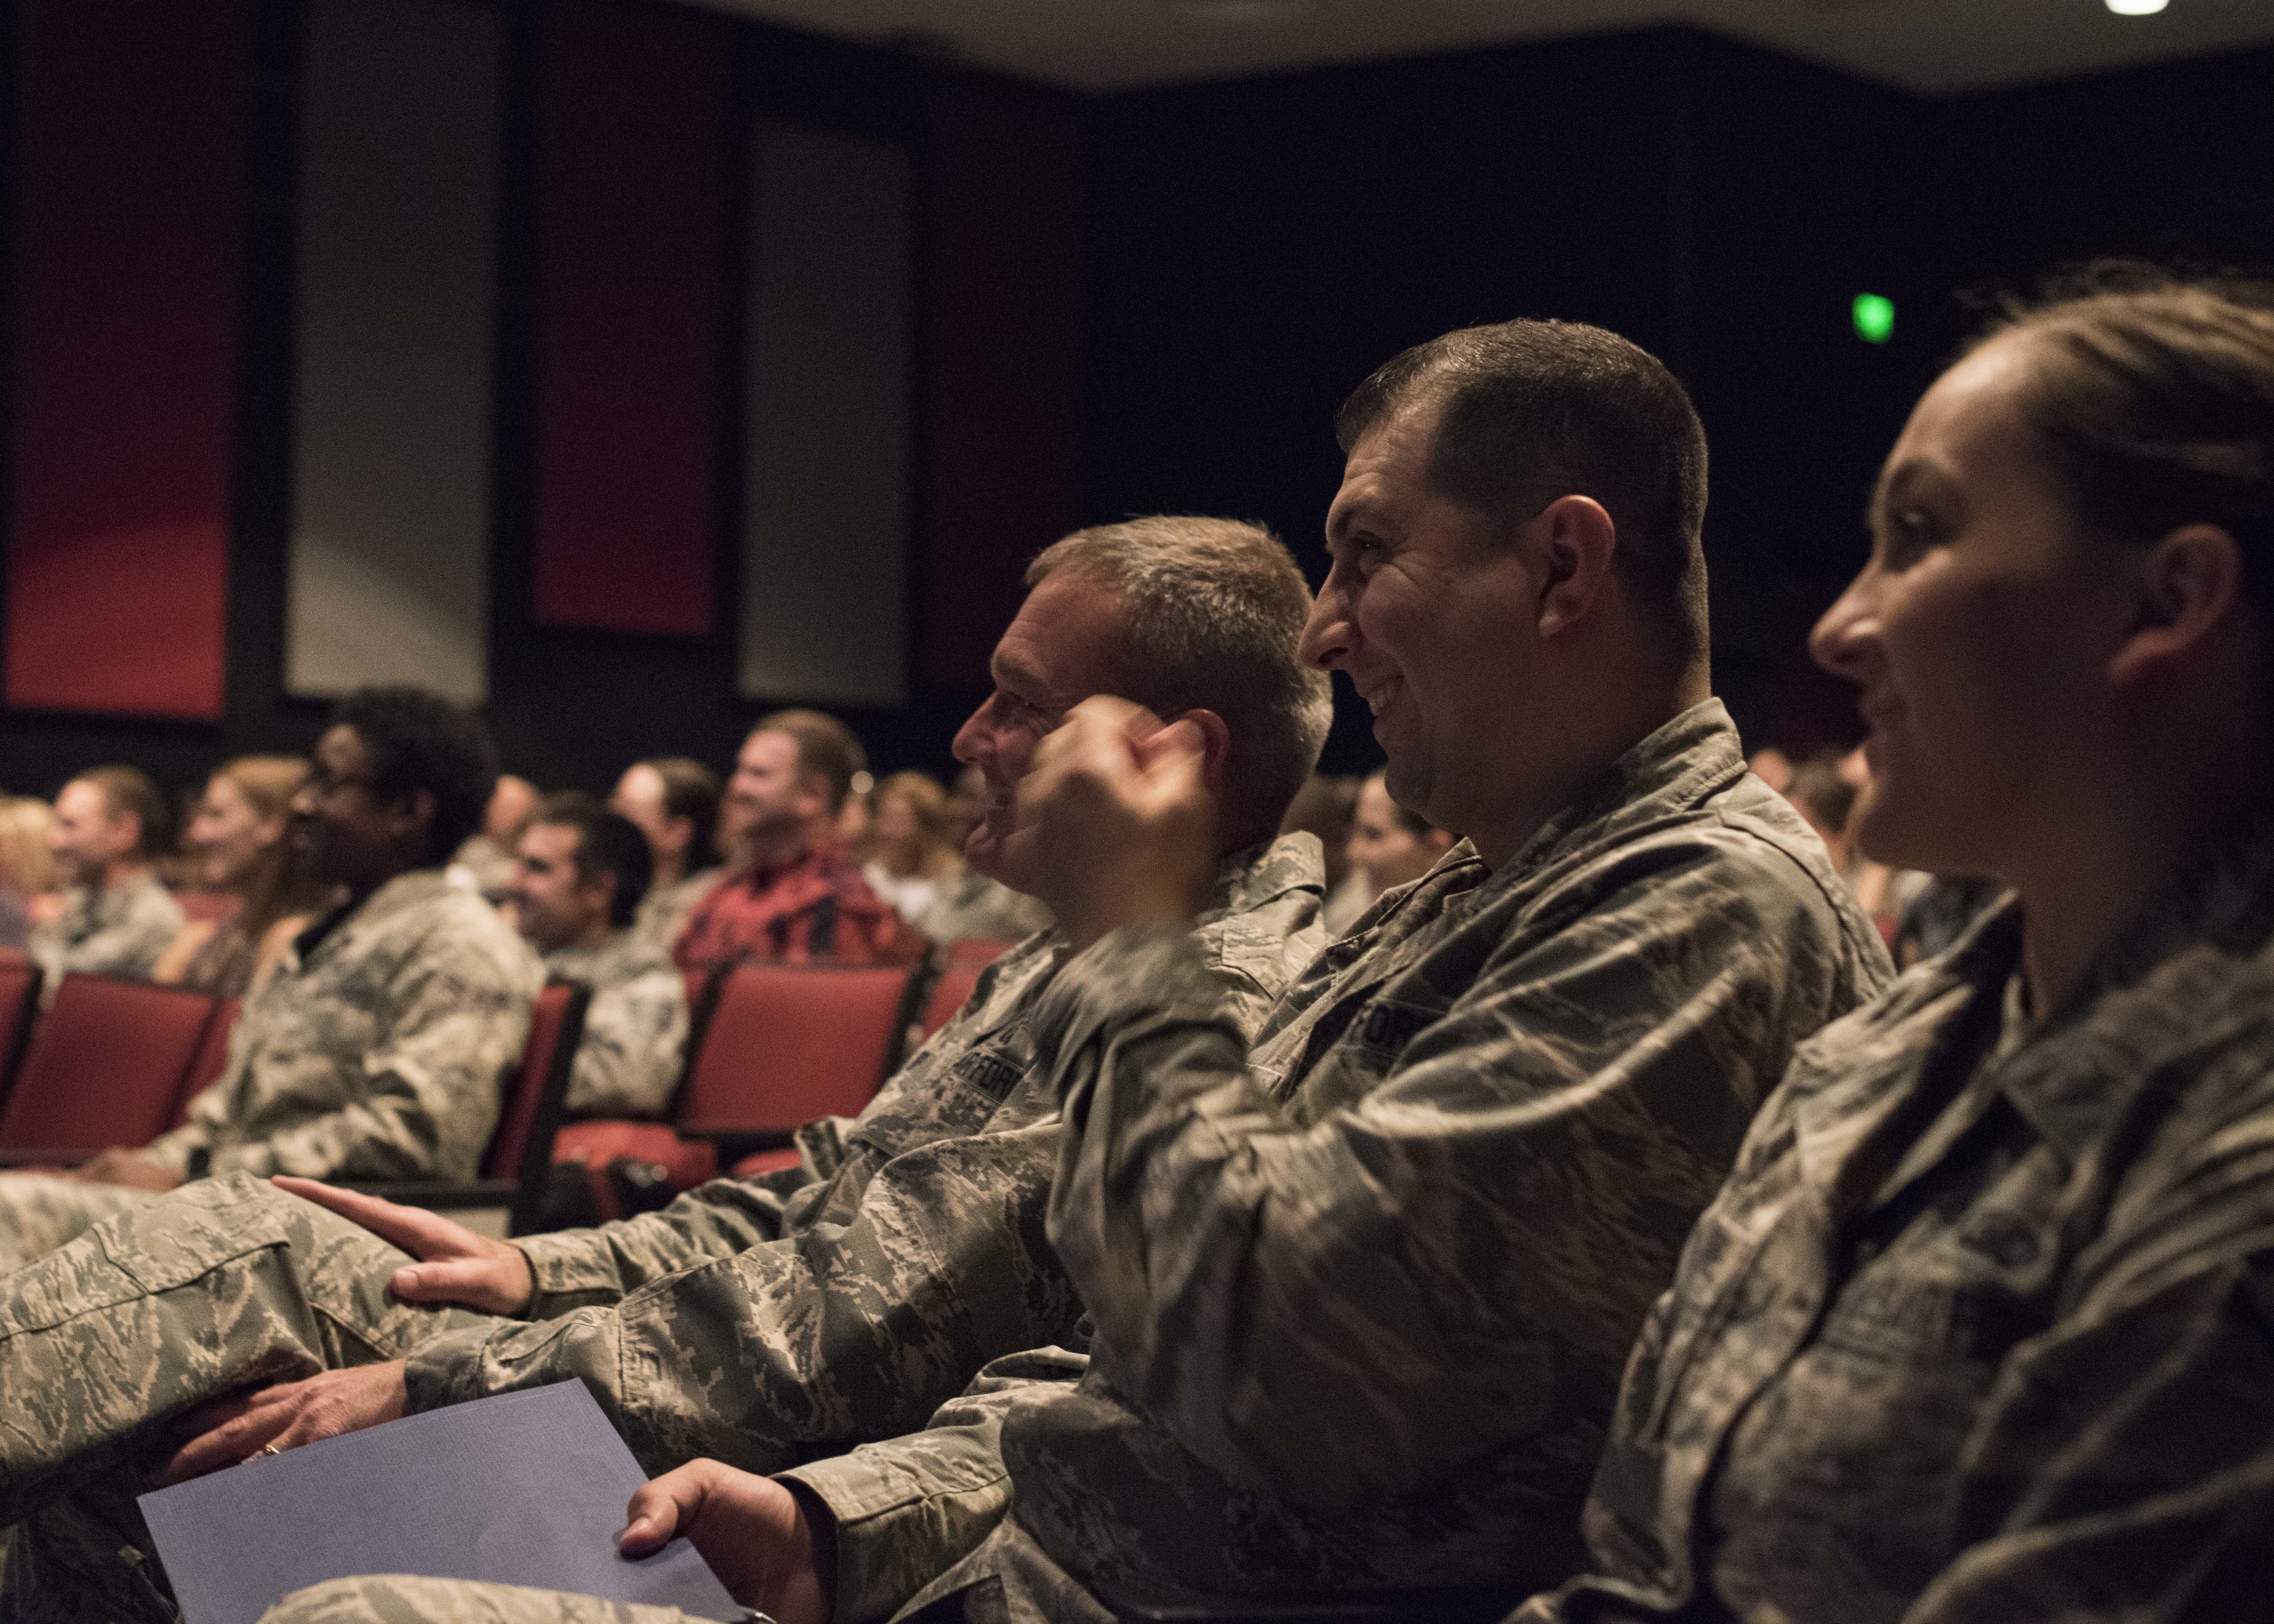 Airmen React To A Presentation By Dr Gary Chapman On The 5 Love Languages